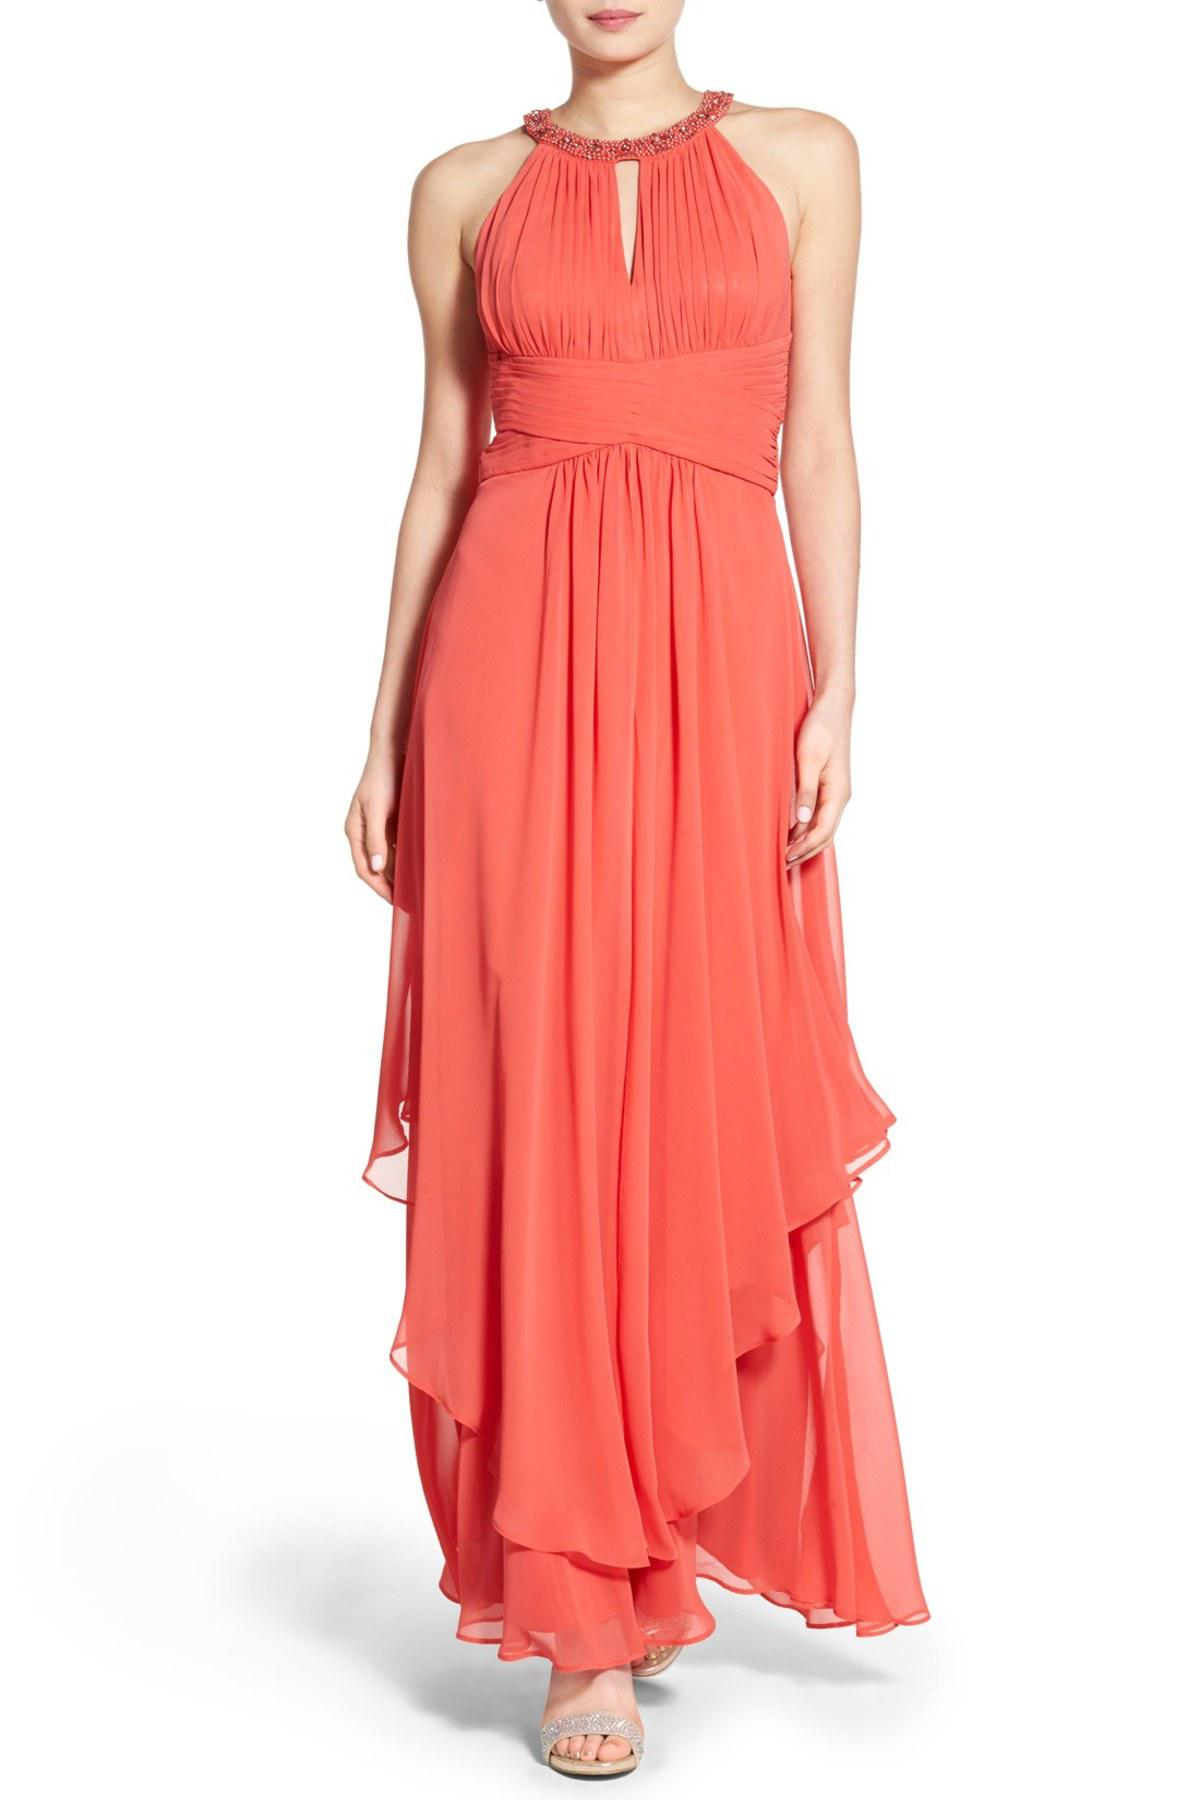 Lyst - Eliza J Embellished Tiered Chiffon Halter Gown in Pink